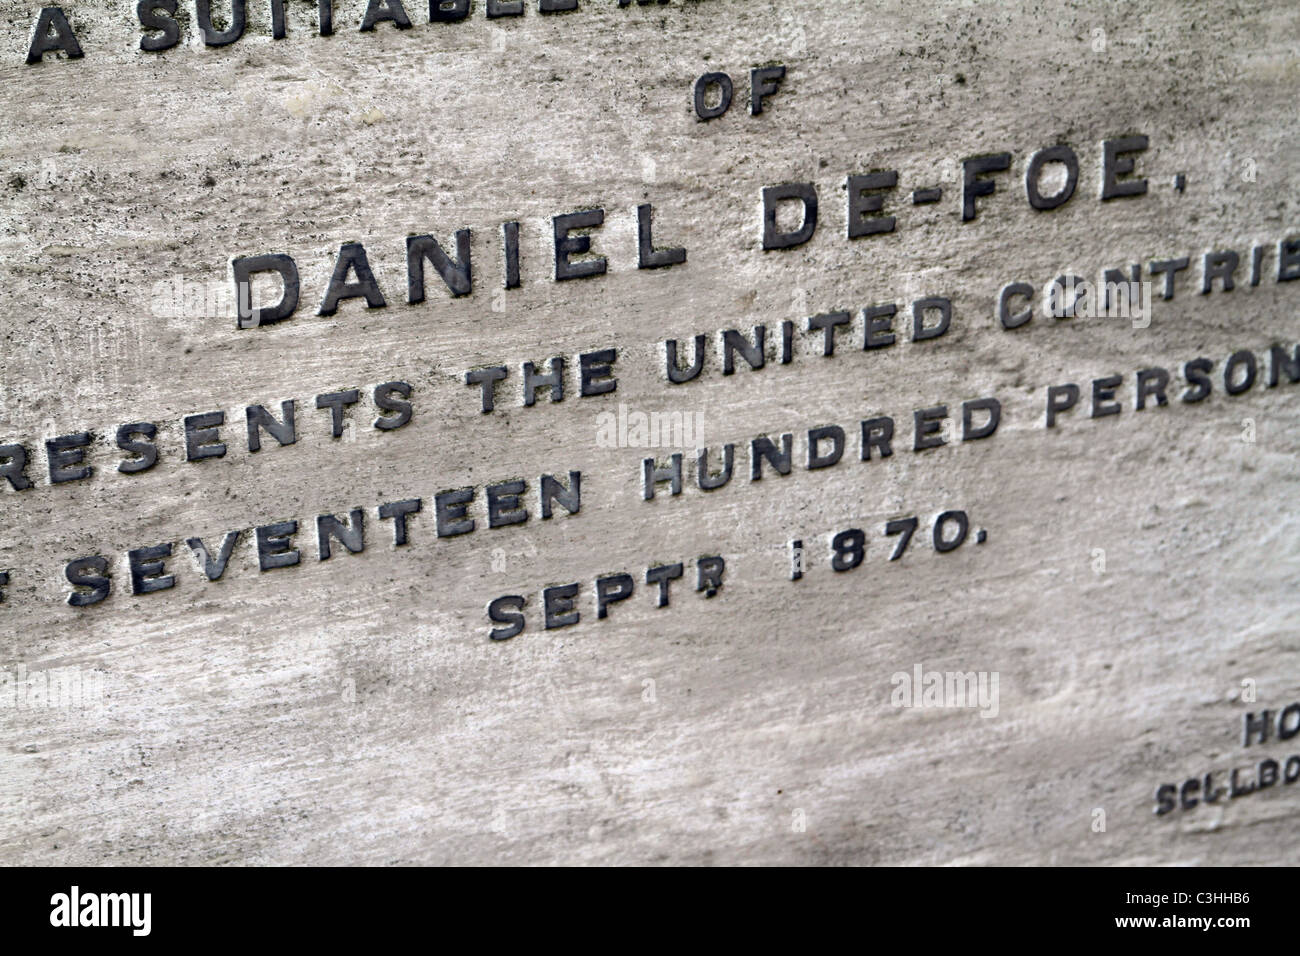 Gravestone of Daniel Defoe at Bunhill Fields Burial Ground in the City of London - Stock Image